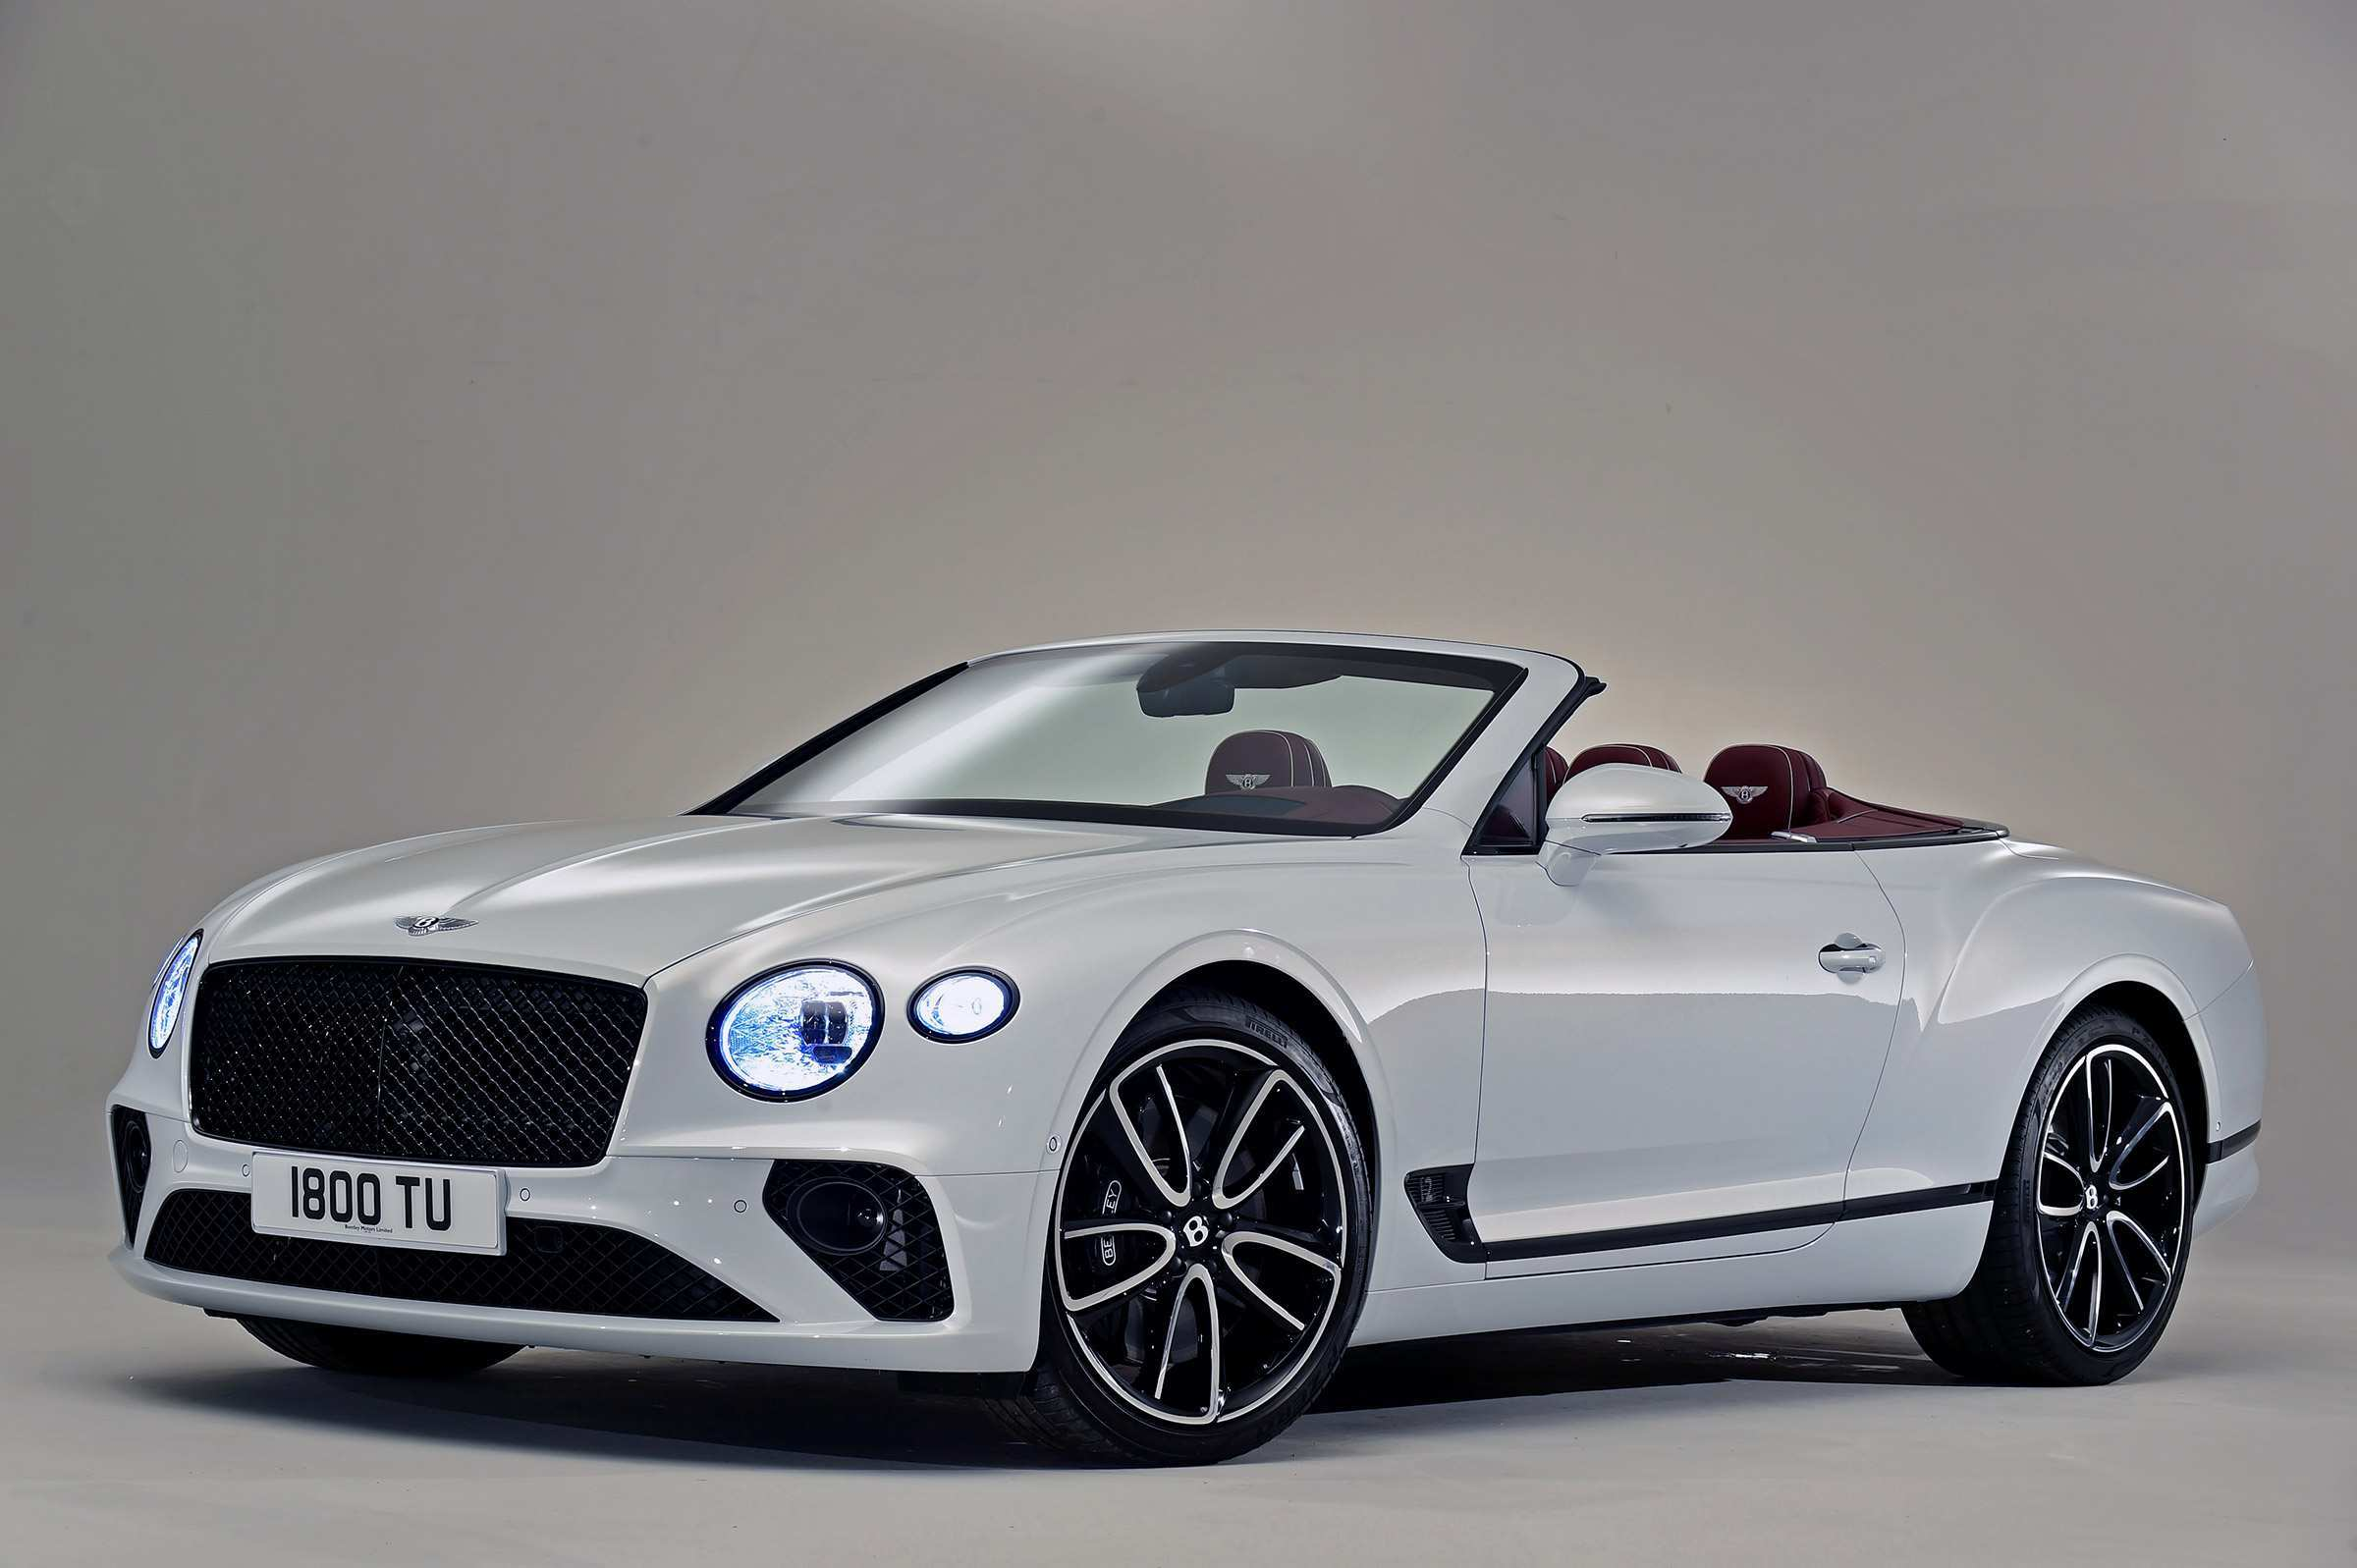 25 Great 2019 Bentley Continental Gt Msrp Pricing for 2019 Bentley Continental Gt Msrp